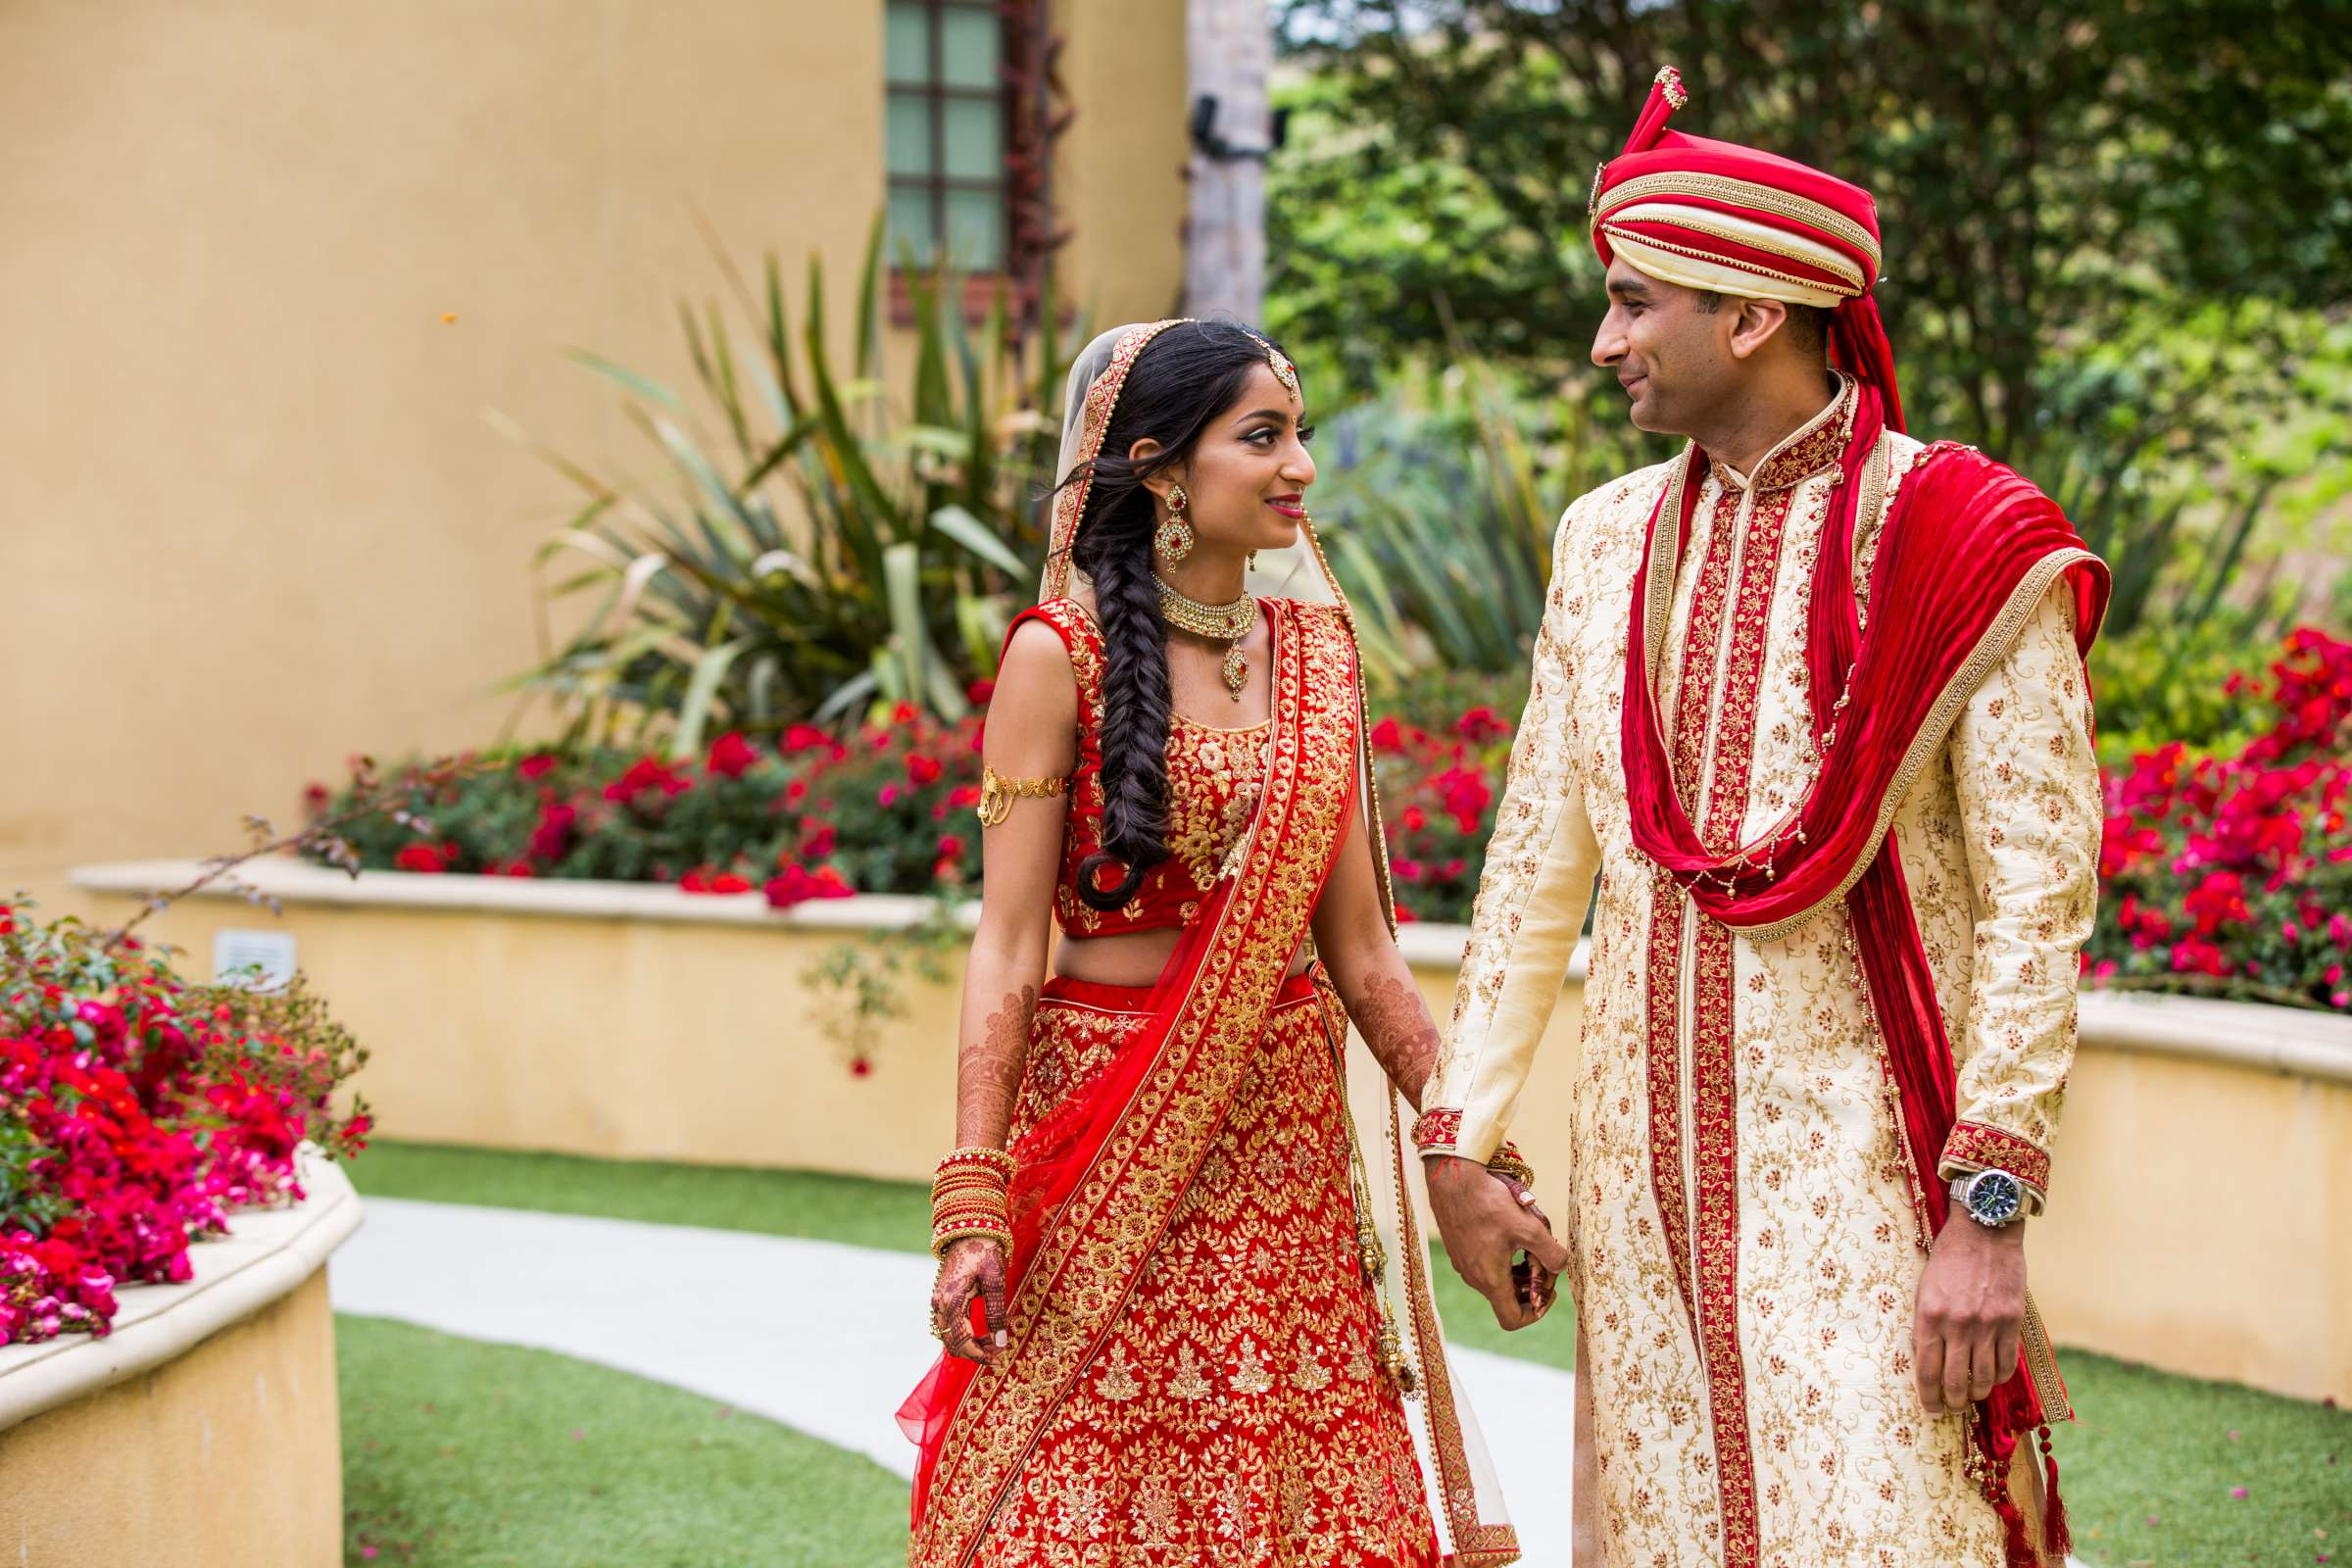 The Westin Carlsbad Resort and Spa Wedding coordinated by Shilpa Patel Events, Ami and Amit Wedding Photo #158 by True Photography